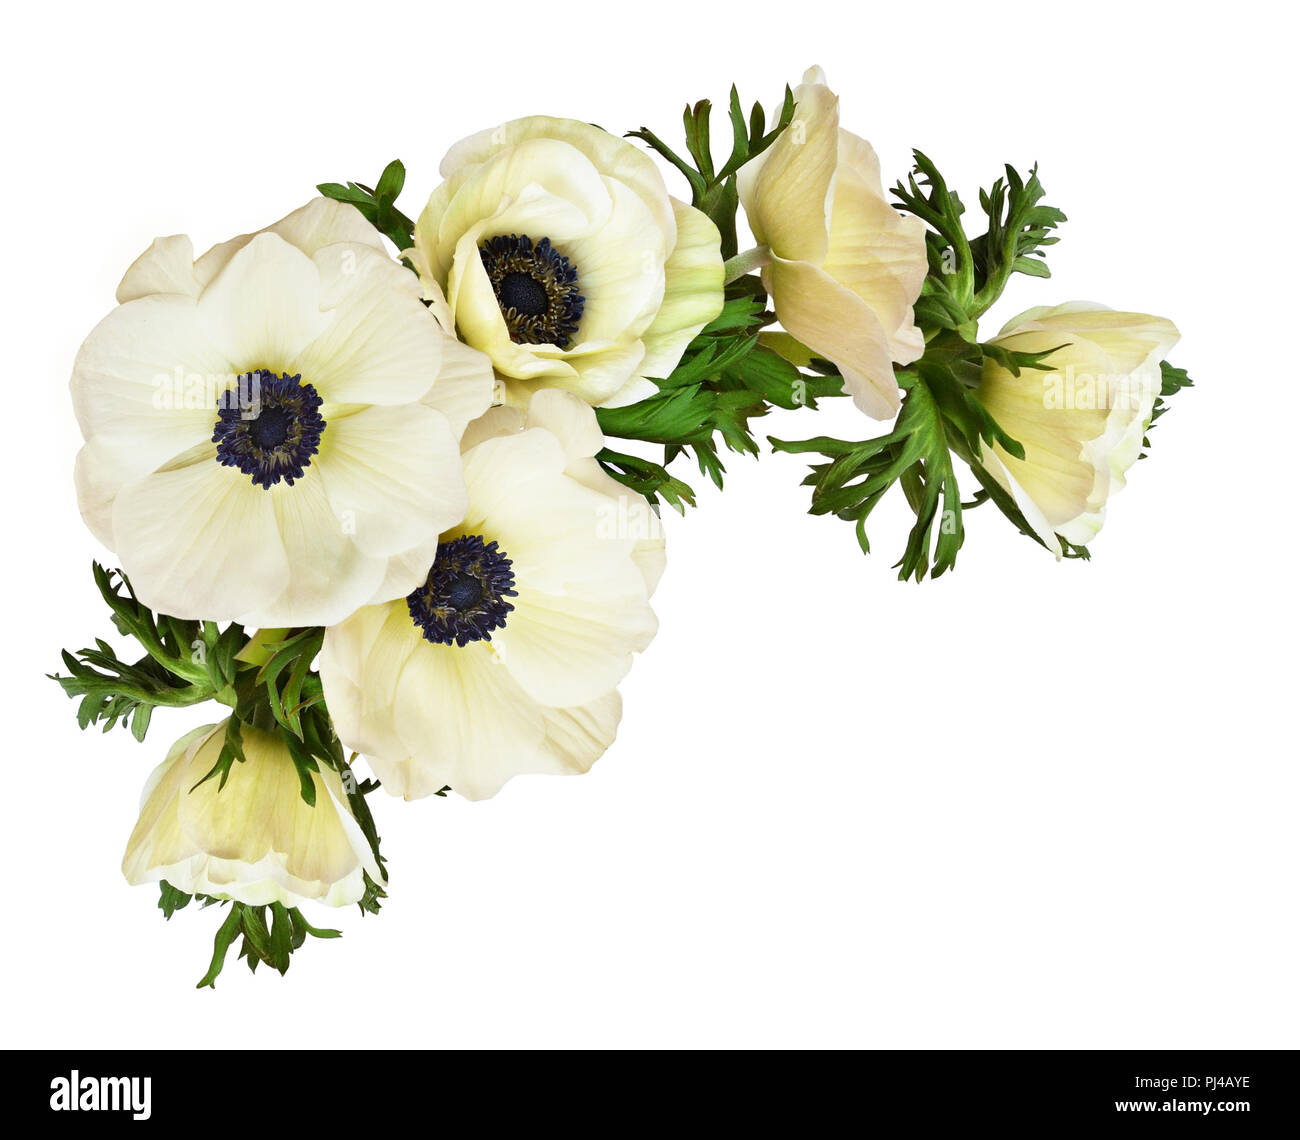 White Anemone Flowers In A Corner Arrangement Isolated On White